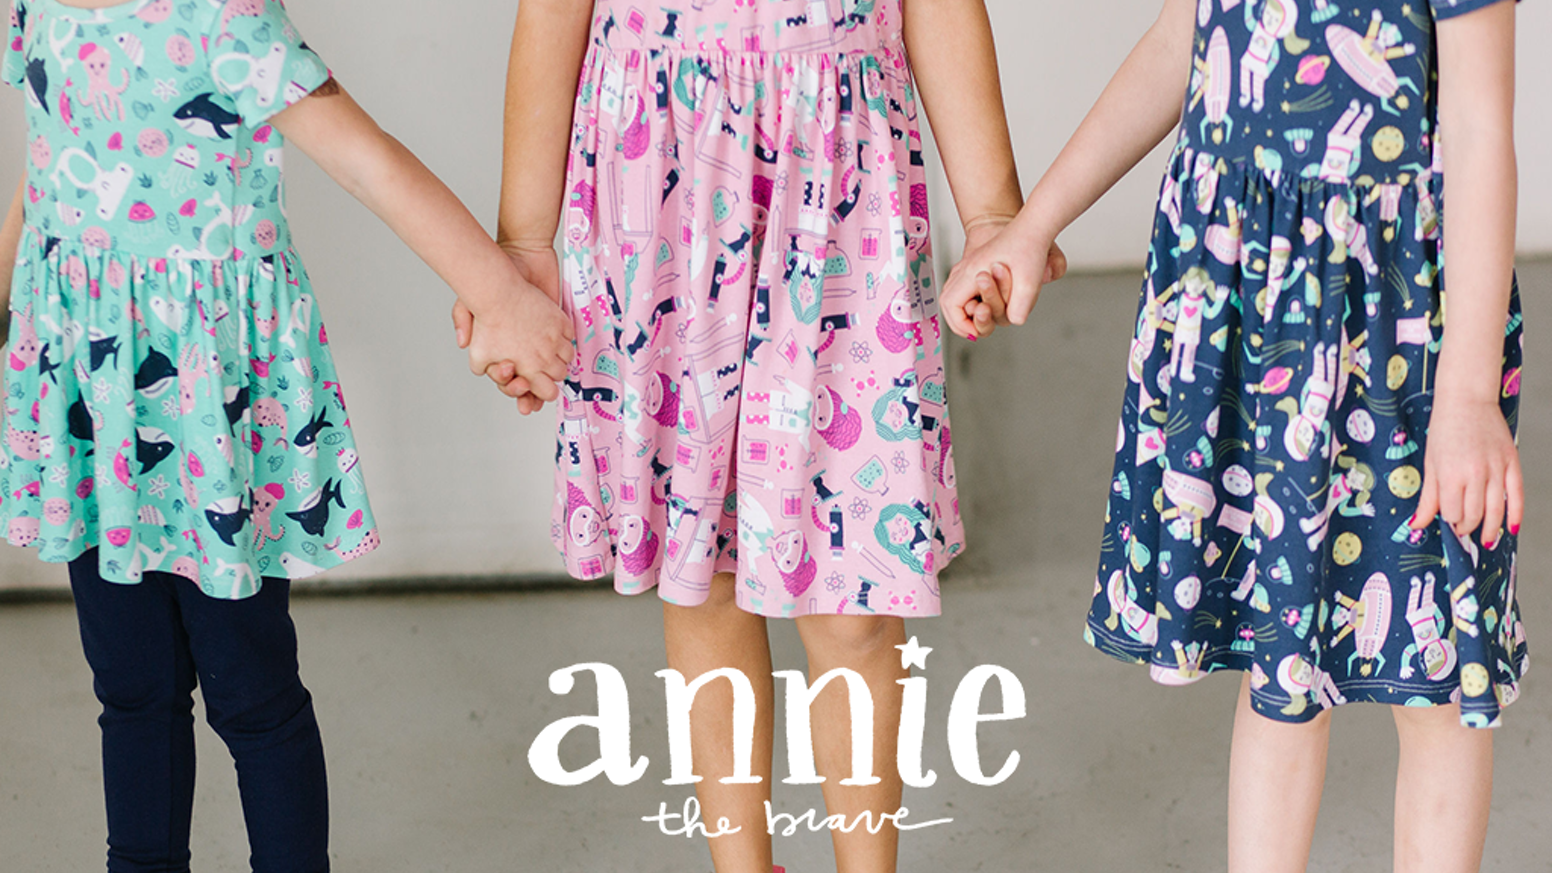 Annie the Brave is a brand that encourages girls to engage their interest in STEM through a line of whimsical, STEM-inspired dresses.